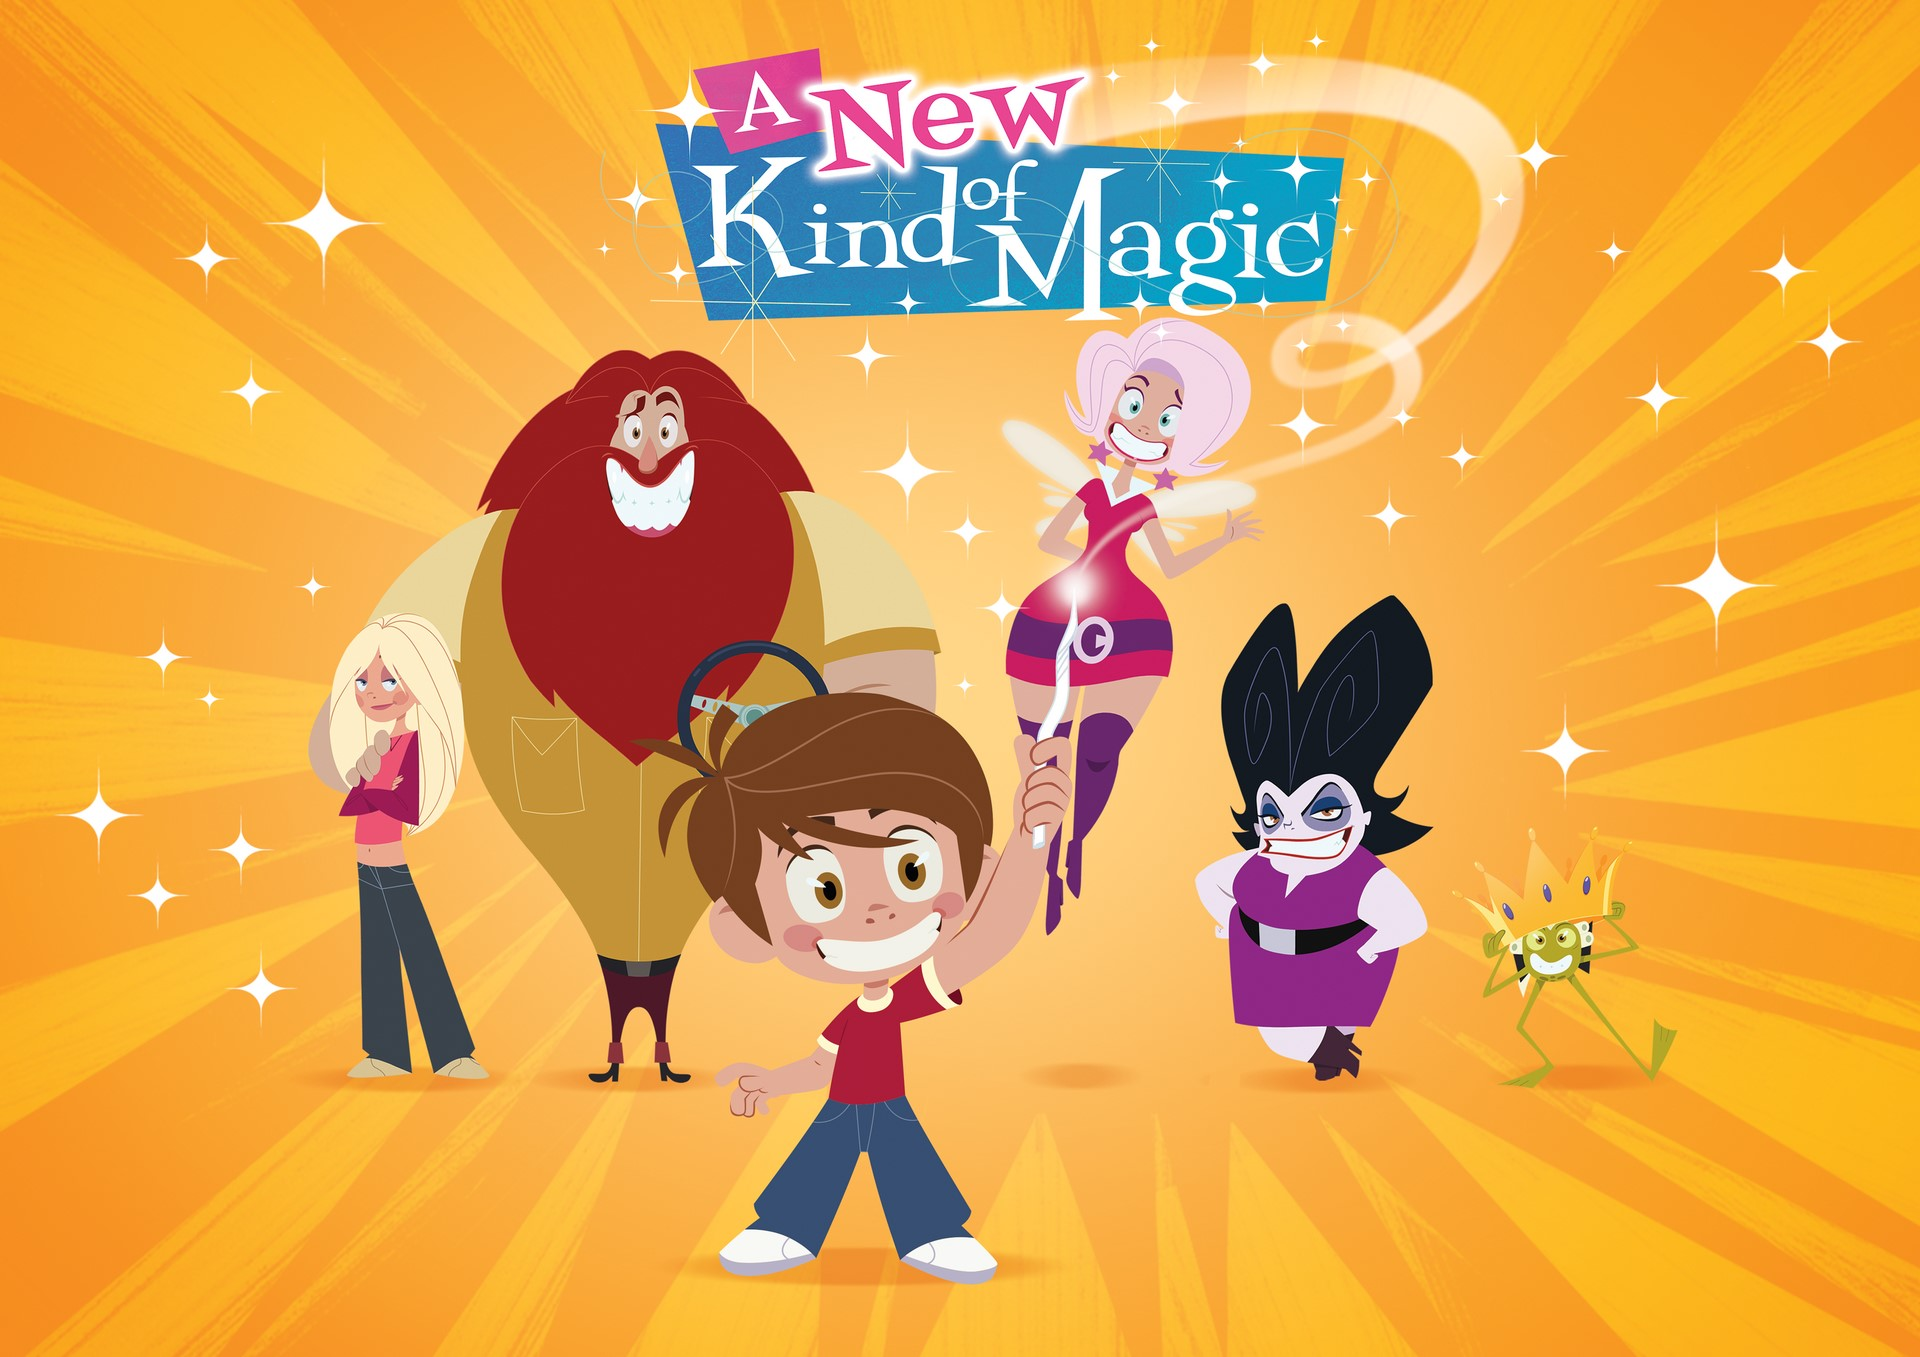 A magic of kind exclusive photo